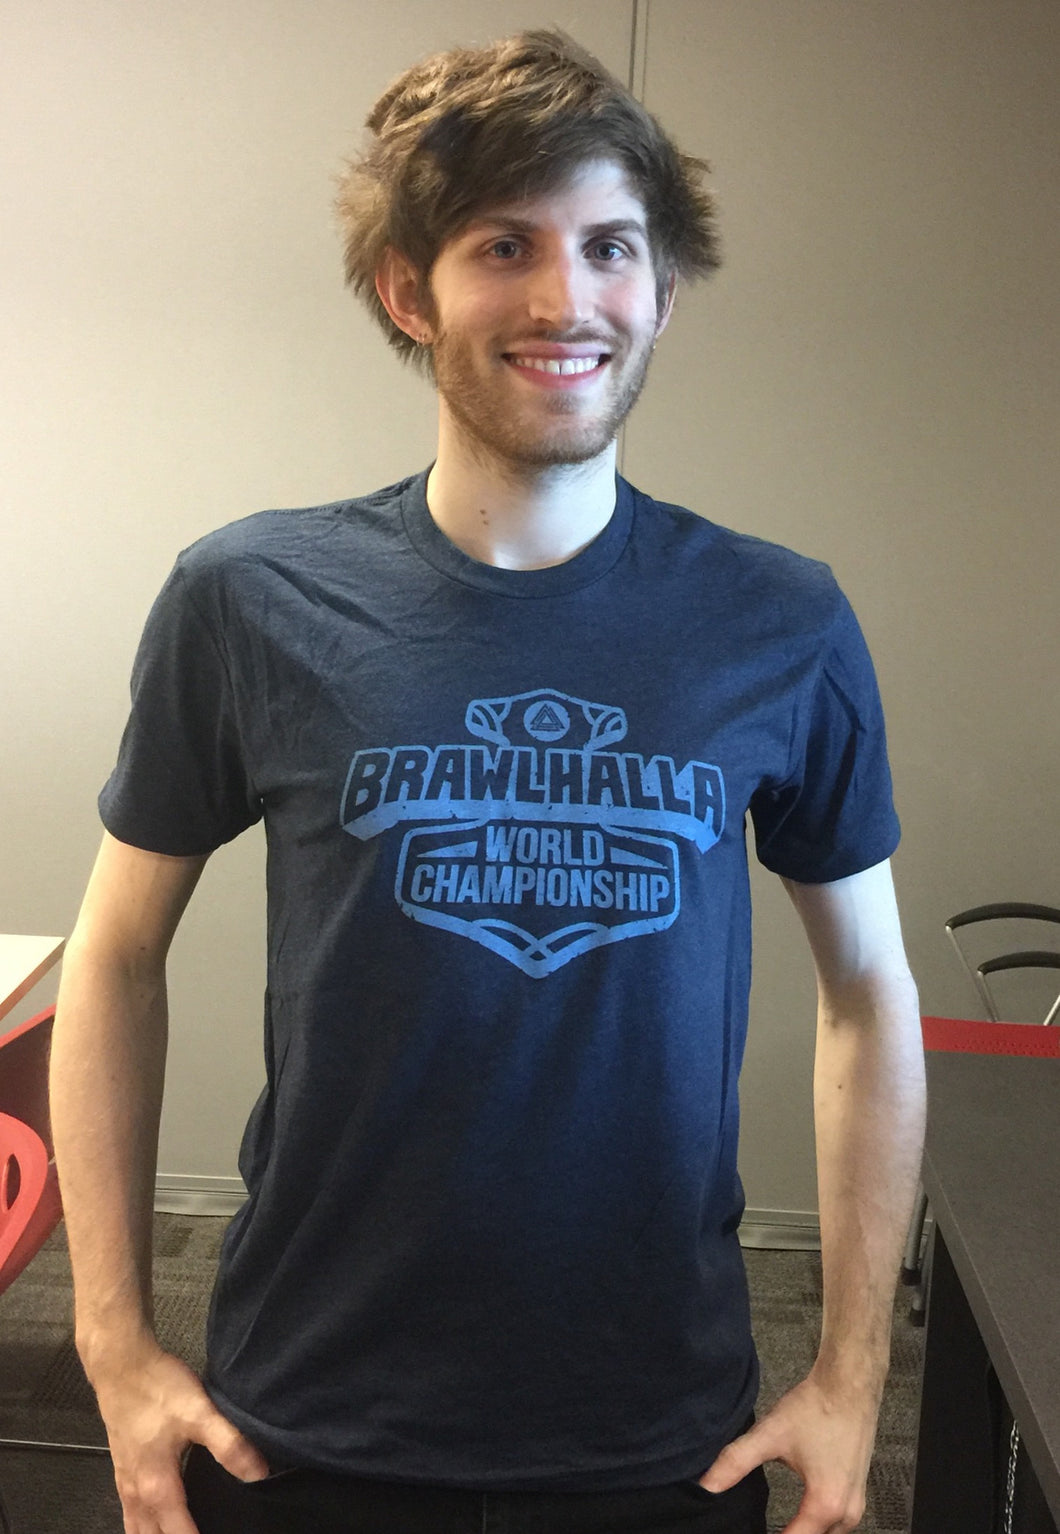 Official 2016 Brawlhalla World Championship T-Shirt